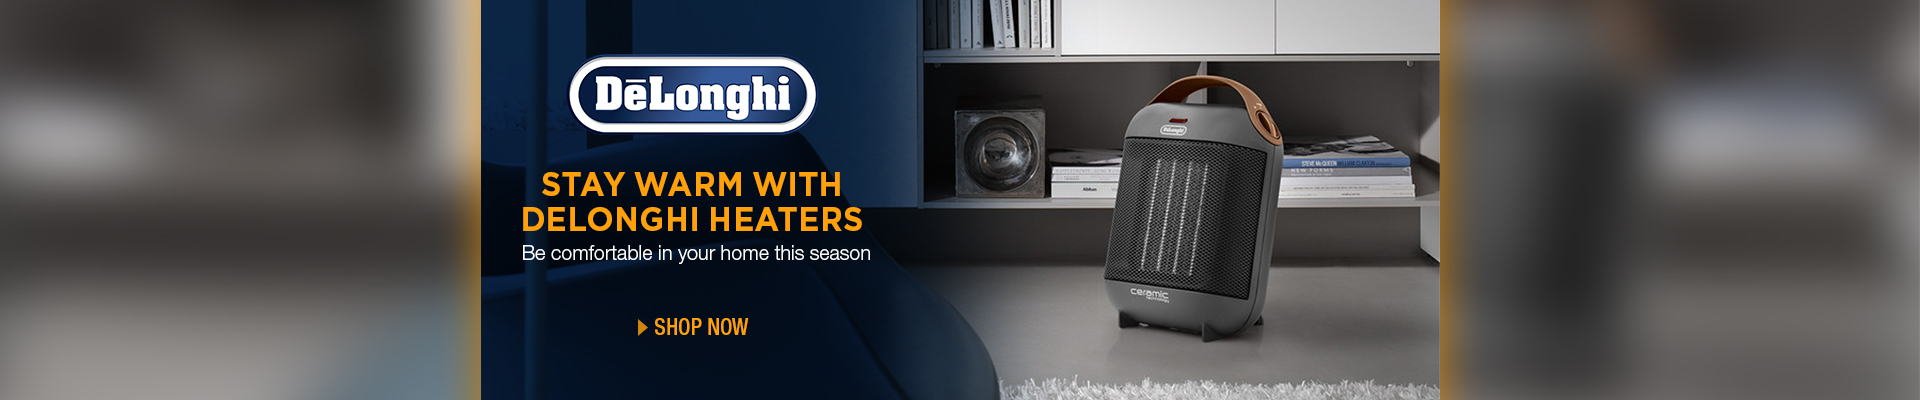 Delonghi Heaters Promo